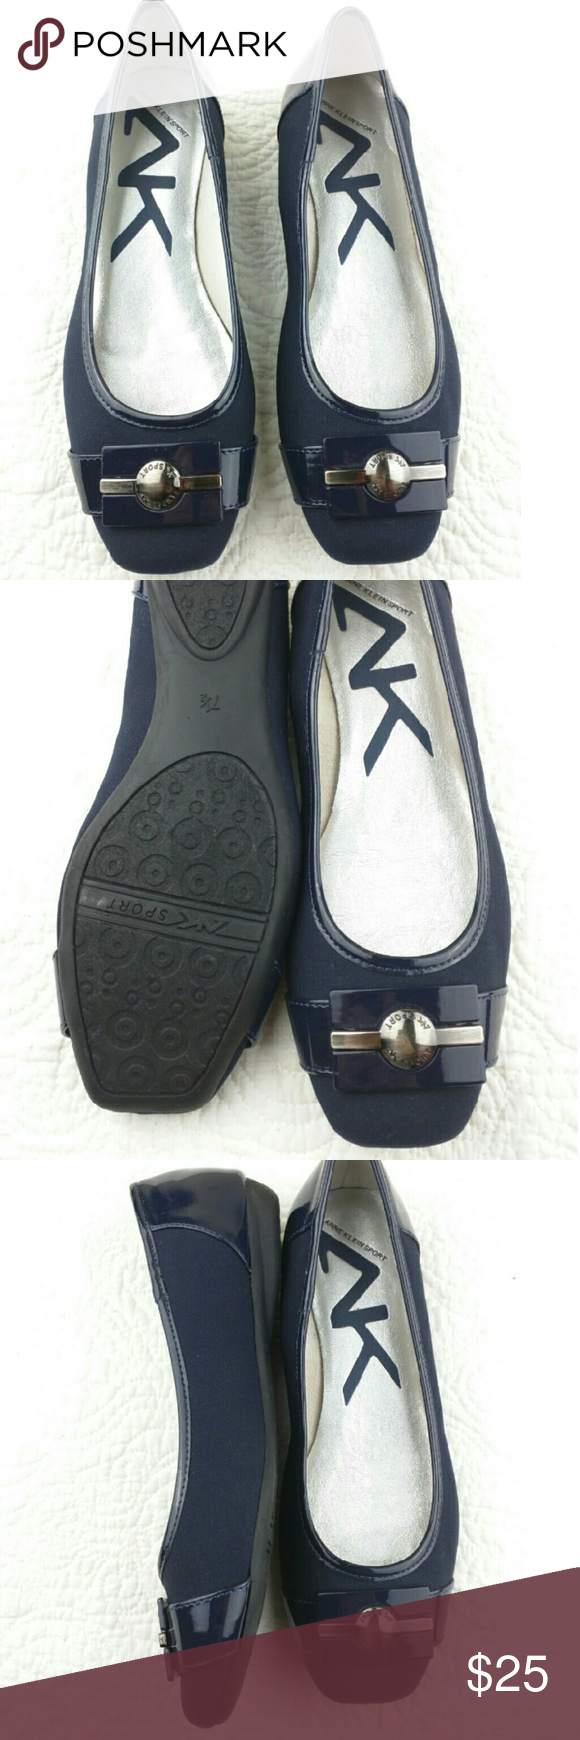 Anne Klein sports flat shoes DARK BLUE Like new,only used for one time very comfortable and clean. Anne Klein Shoes Flats & Loafers